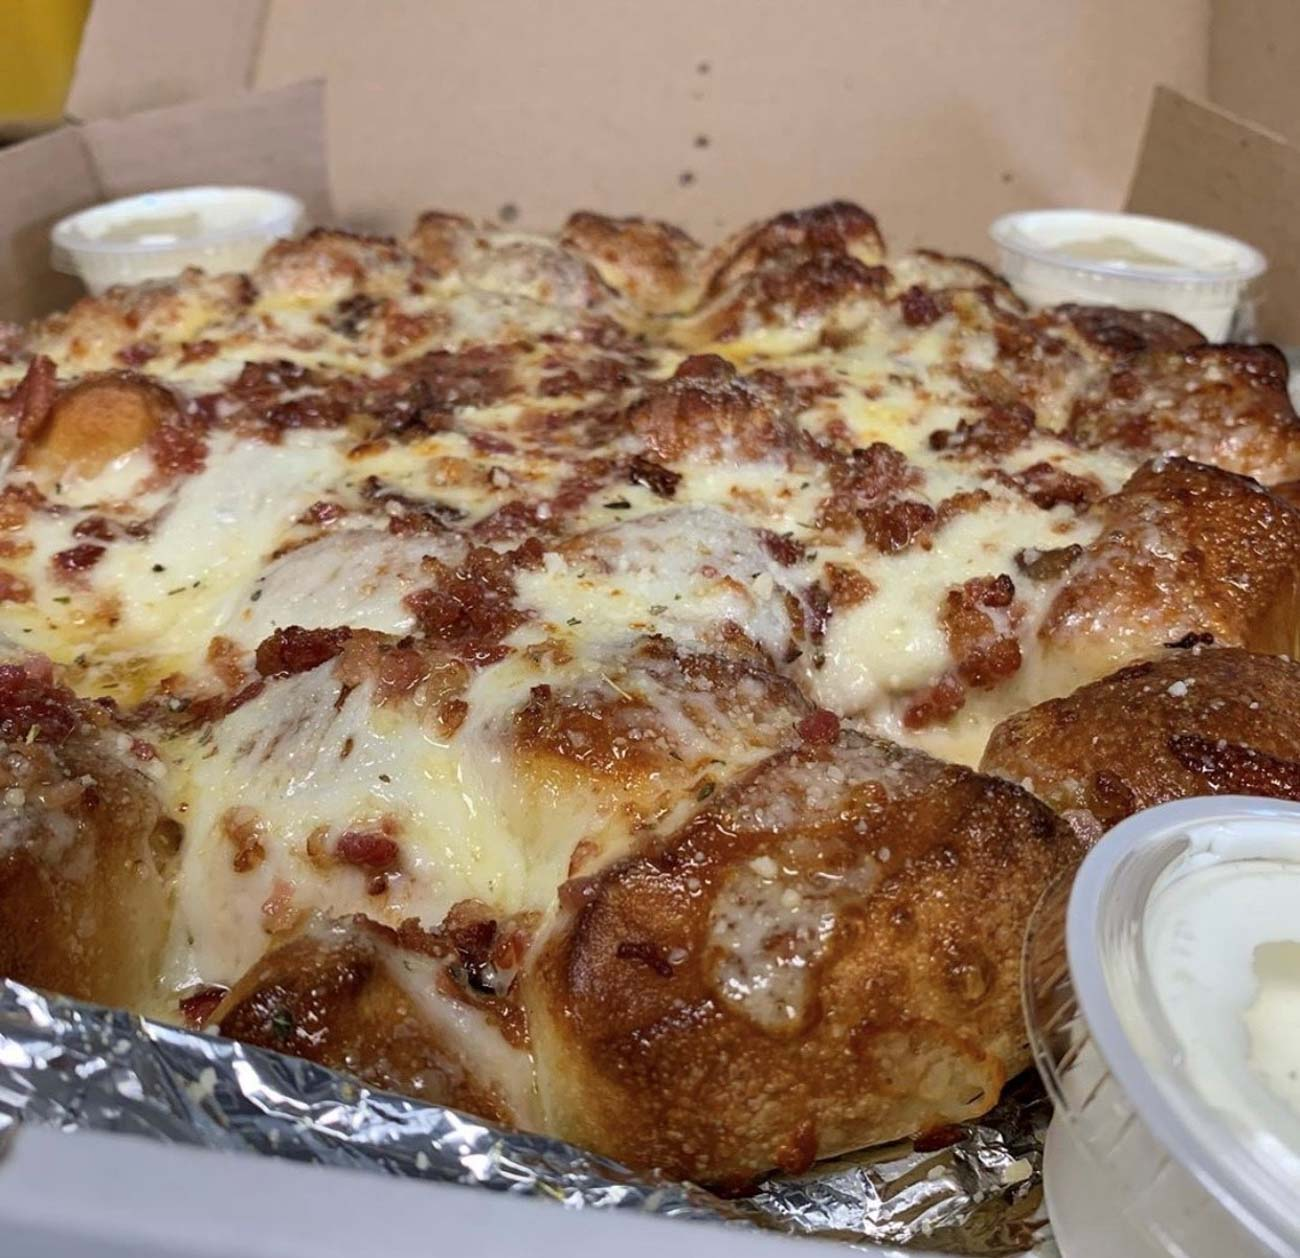 Drip Too Hard: their Cheesy Garlic Drips topped with bacon and a side of homemade ranch dipping sauce / Image courtesy of Poseidon's Pizza Company // Published: 7.8.20